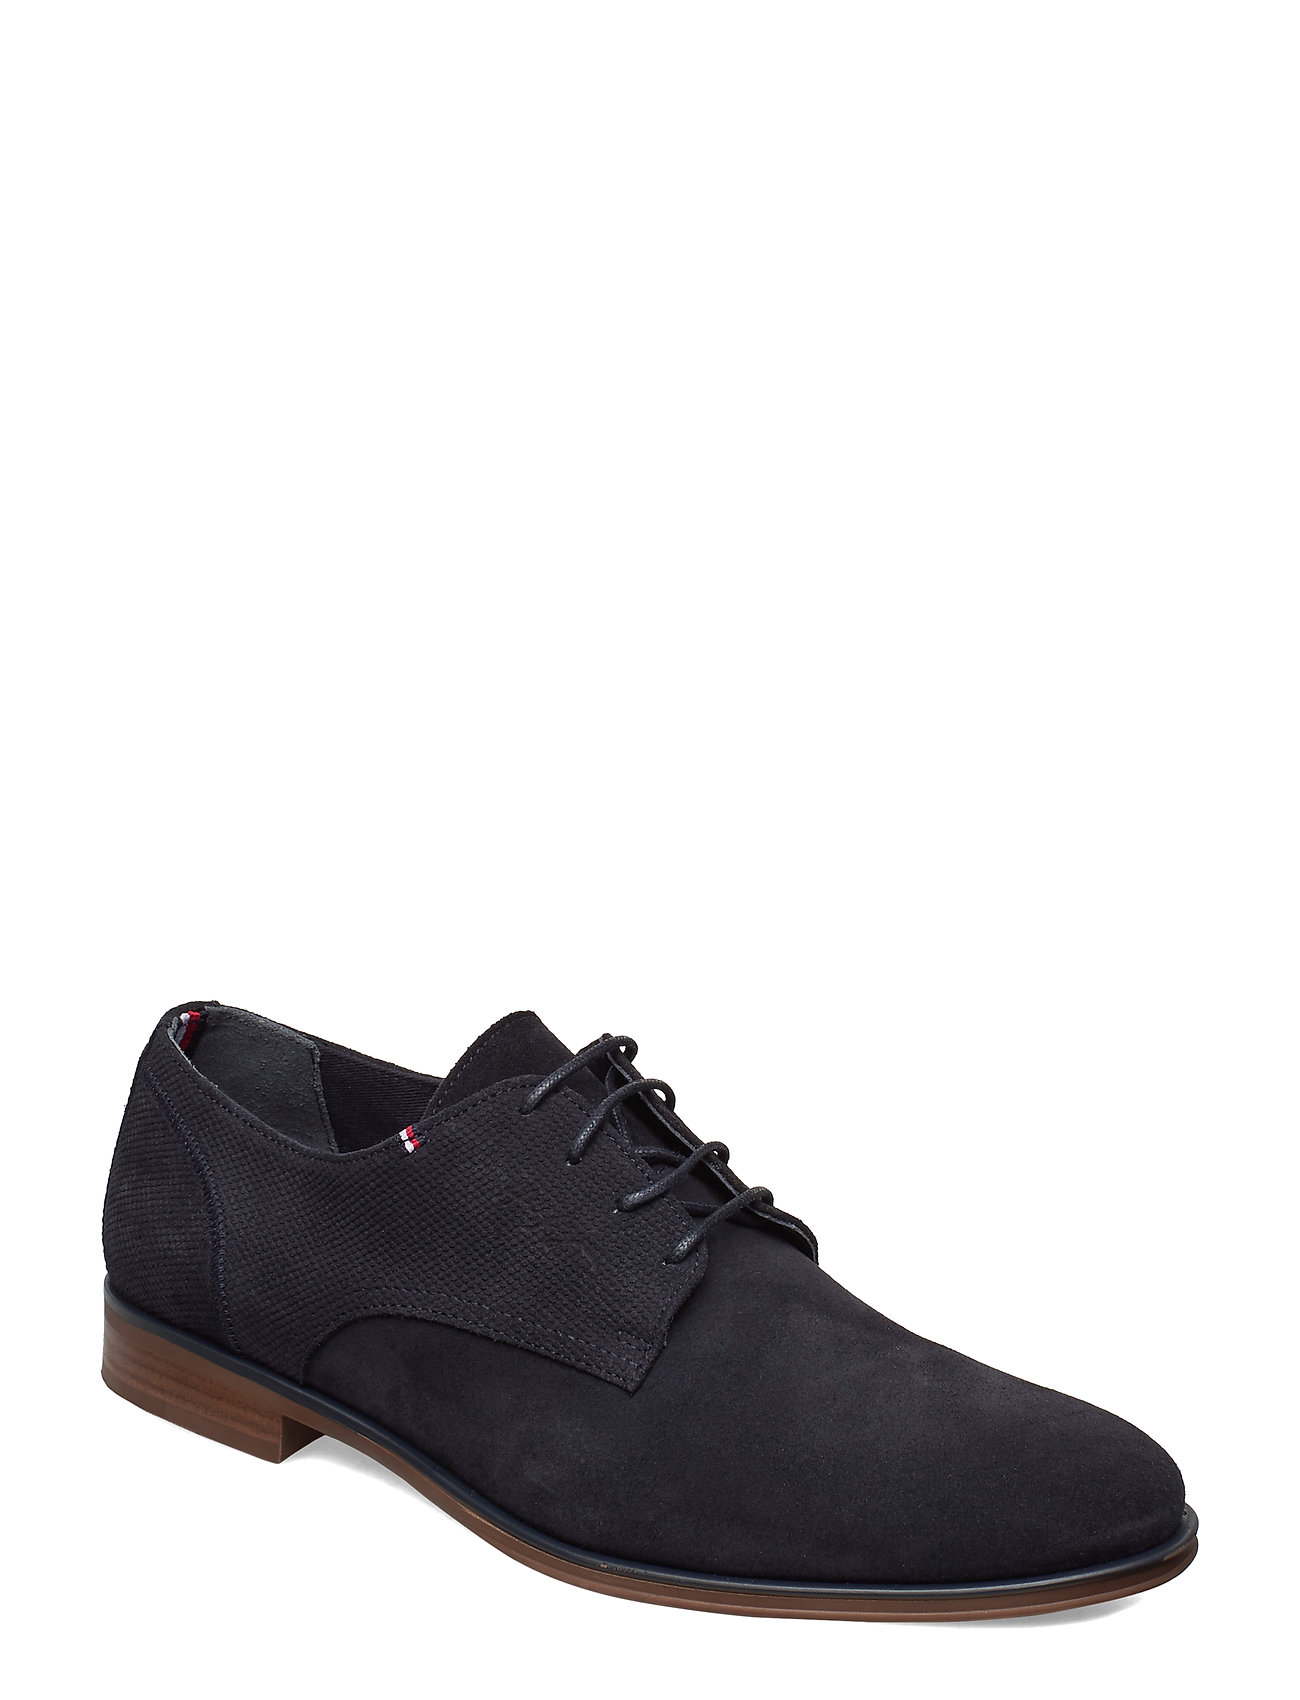 Image of Casual Embossed Suede Shoe Shoes Business Formal Shoes Sort Tommy Hilfiger (3352579259)